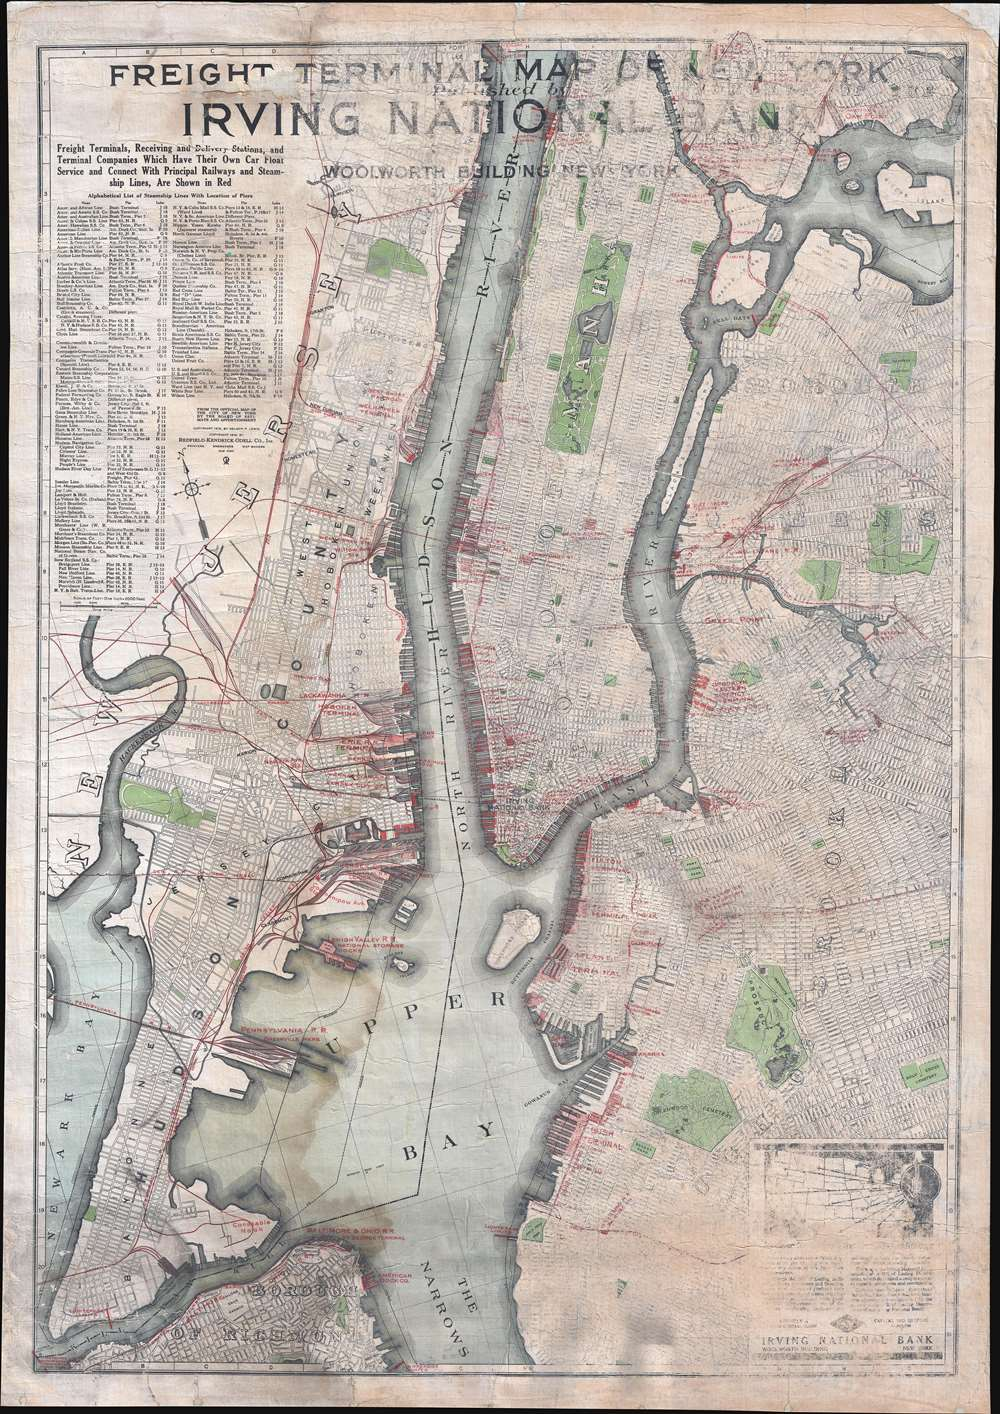 Freight Terminal Map of New York. Published by Irving National Bank.